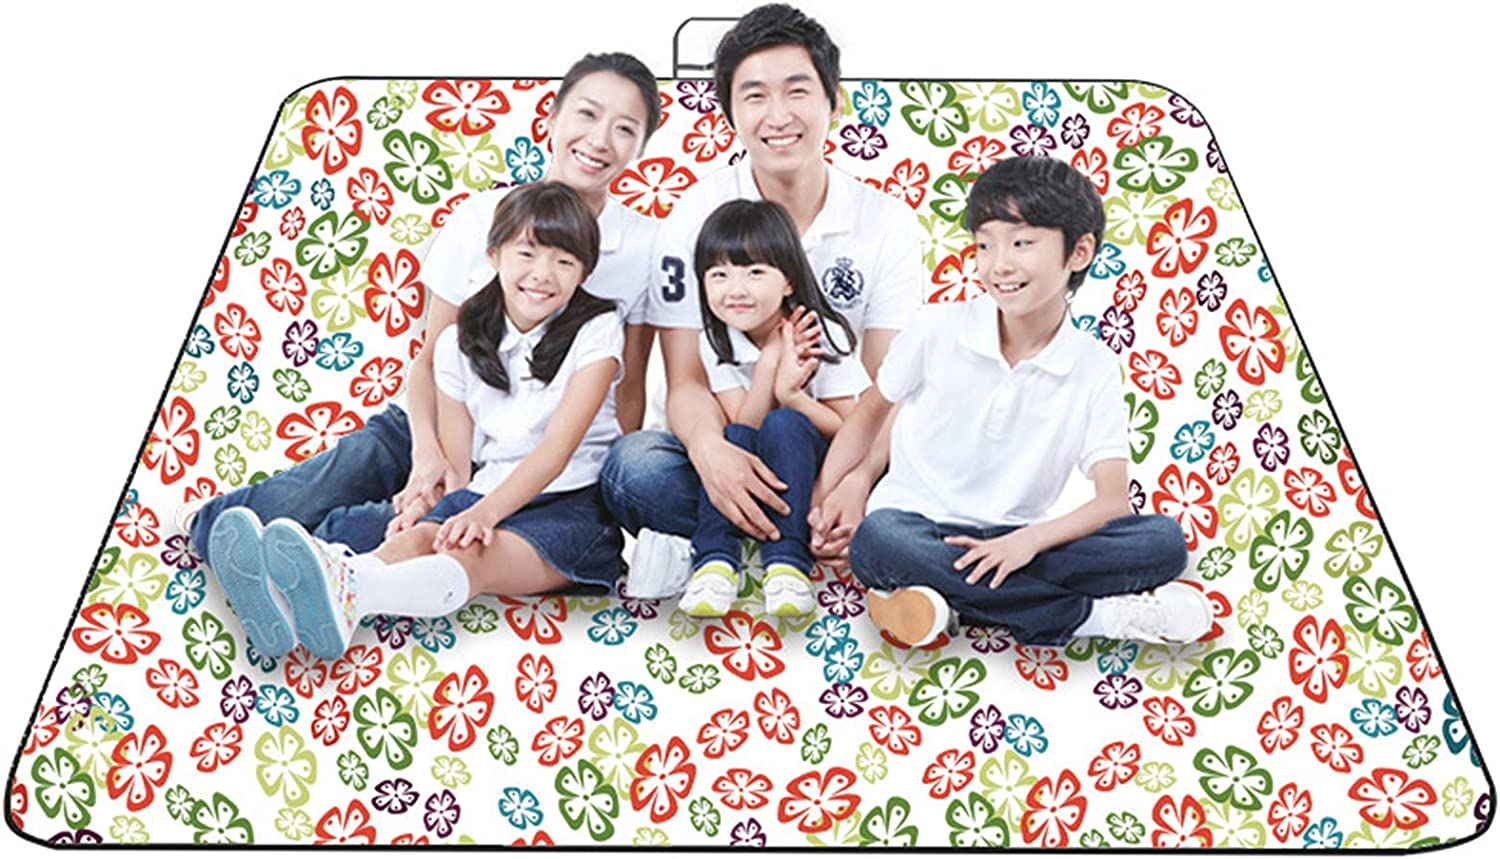 HGDR Outdoor Spring Outing Picnic Sale Park Camping Mat Gr Thickened Max 62% OFF